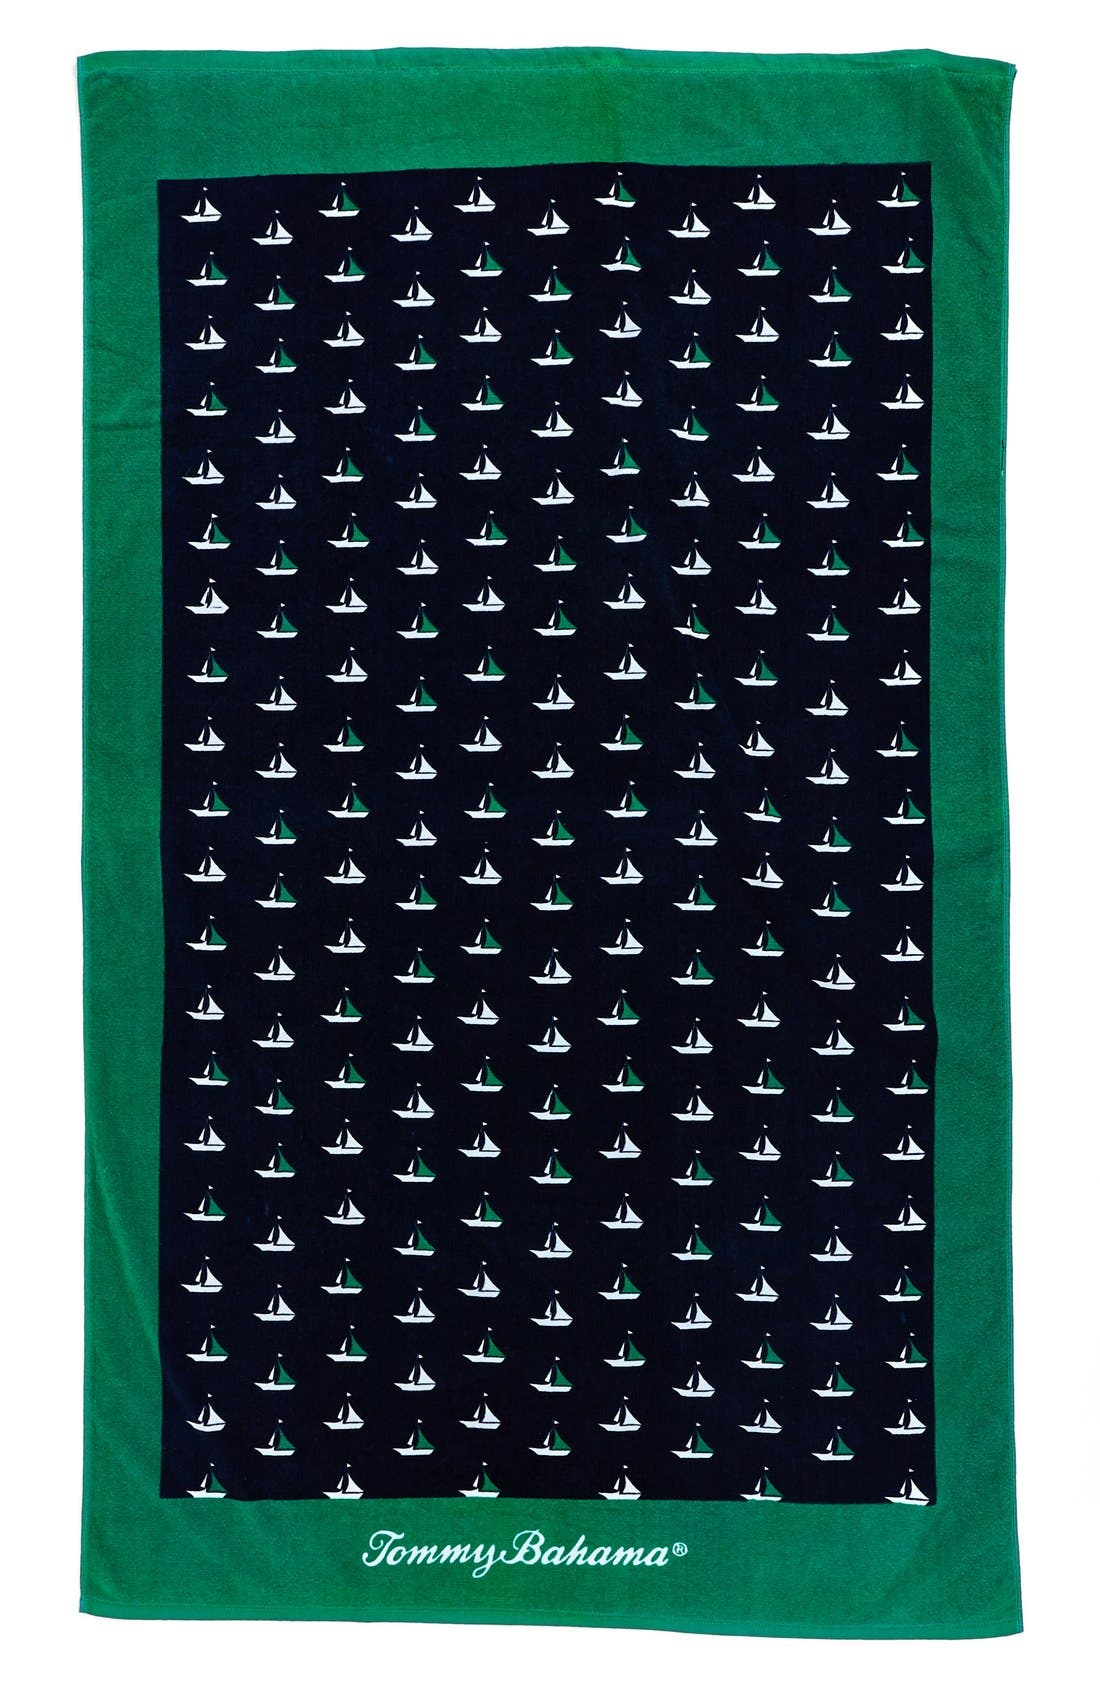 Main Image - Tommy Bahama 'Sailboats' Cotton Terry Beach Towel